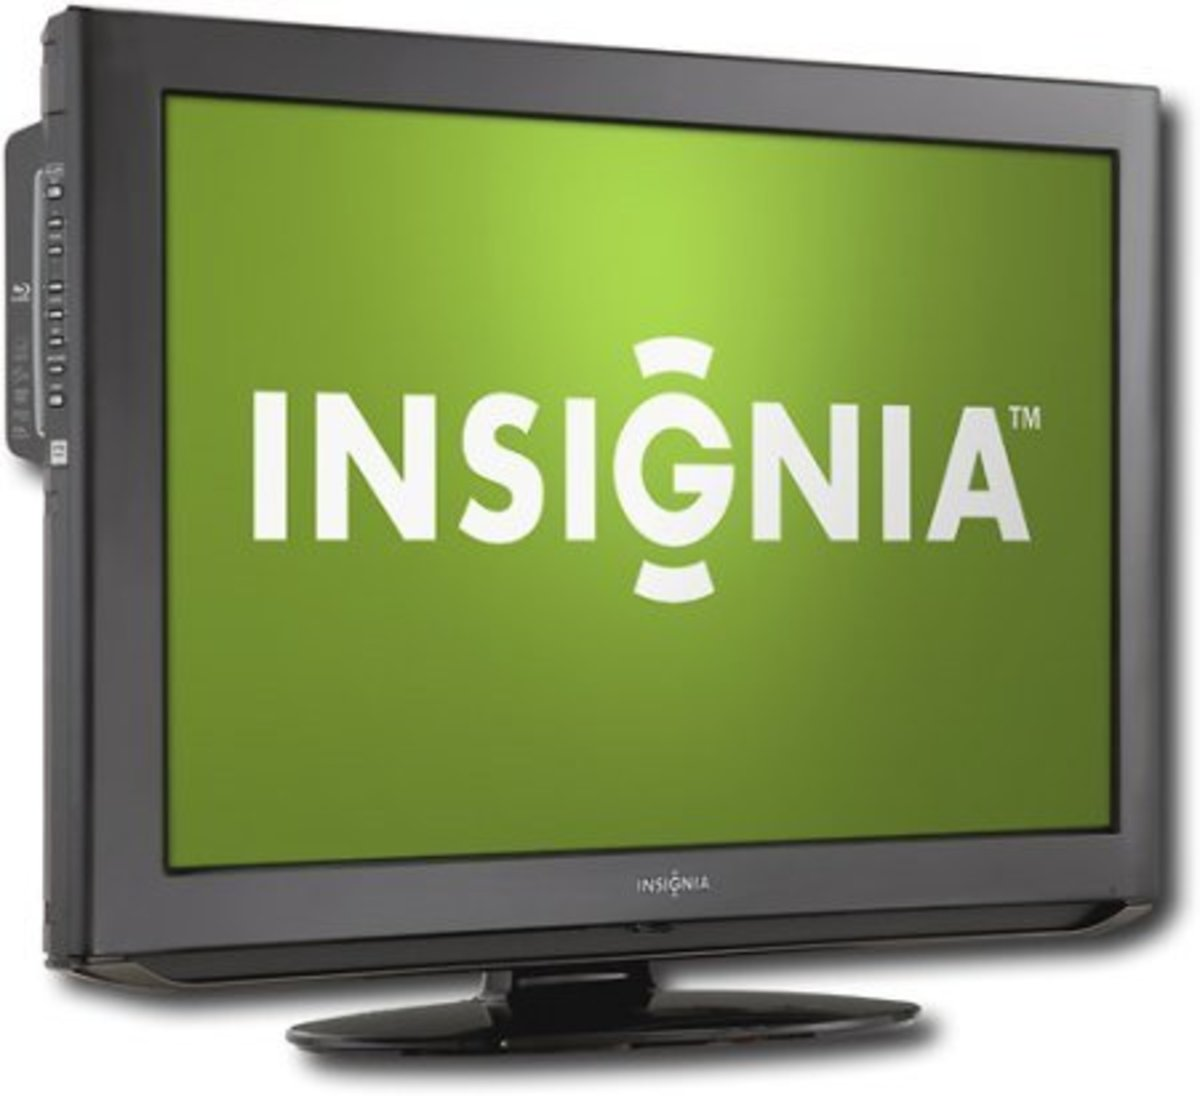 Updating Insignia TV Firmware | HubPages